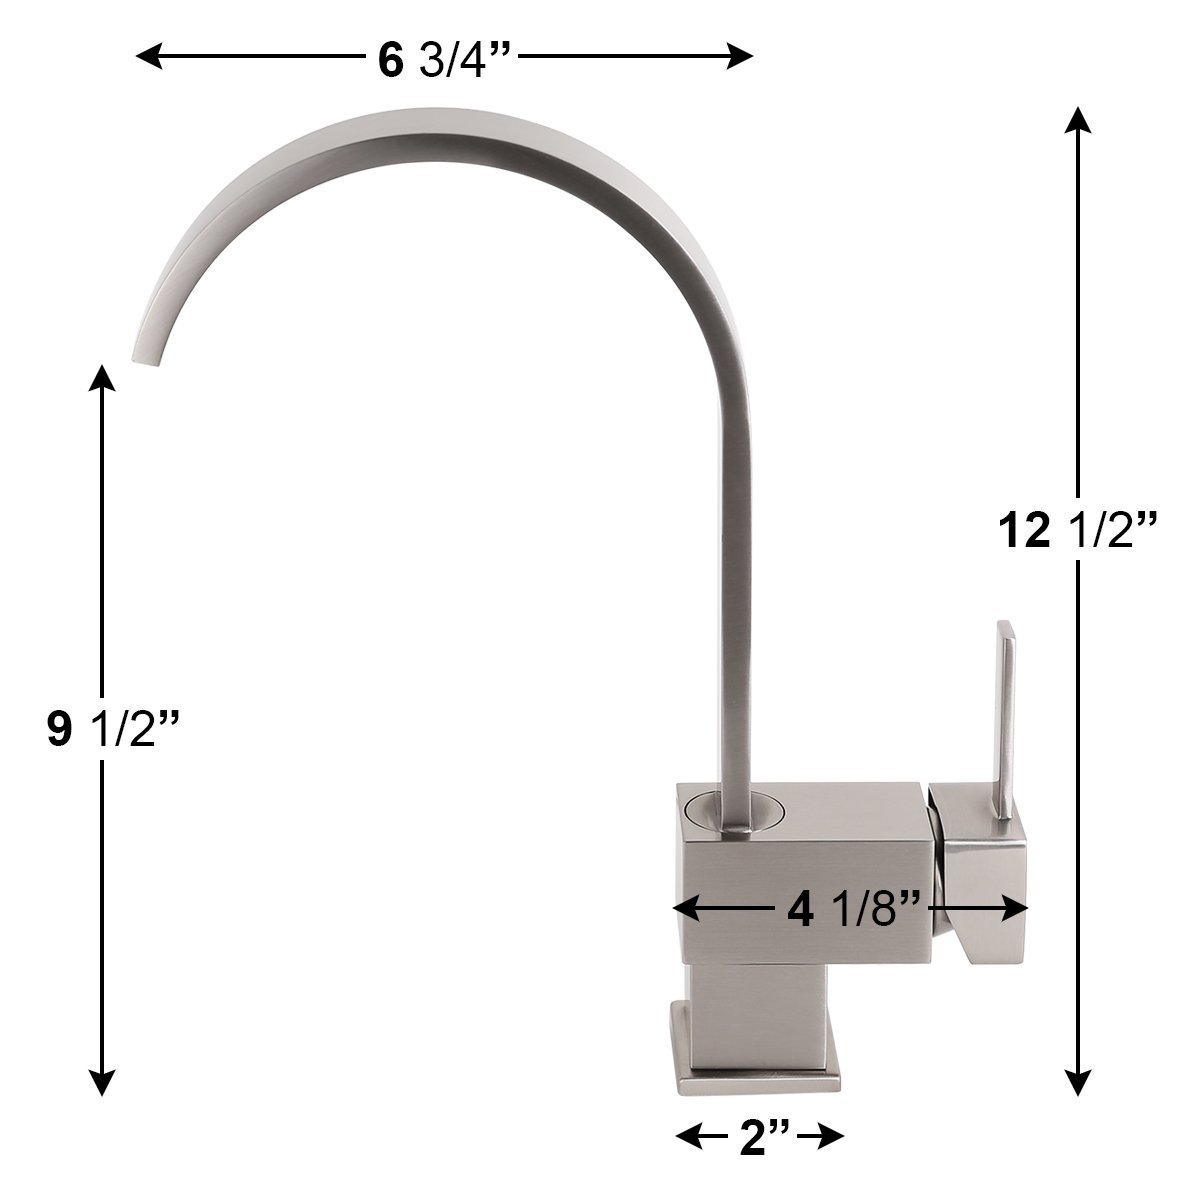 Yodel Swivel Head Modern Kitchen/Wet Bar Sink Faucet, Brushed Nickel by Yodel faucet